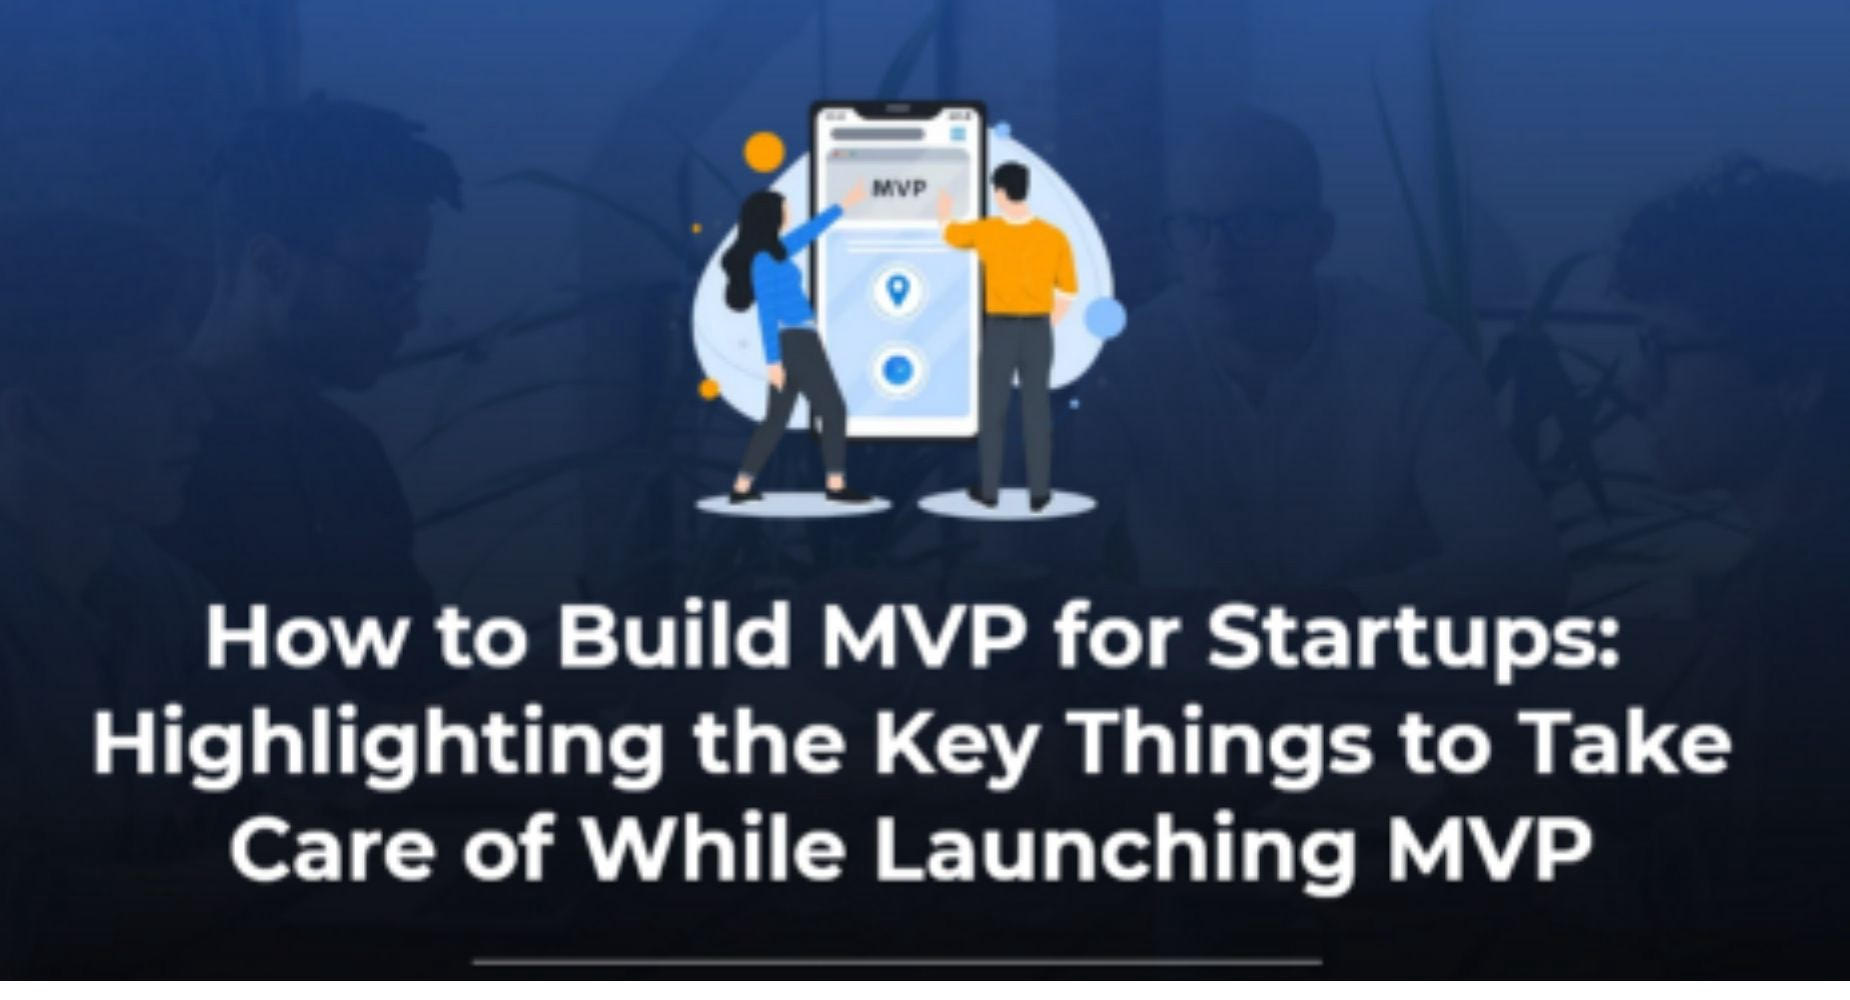 How to Build MVP for Startups